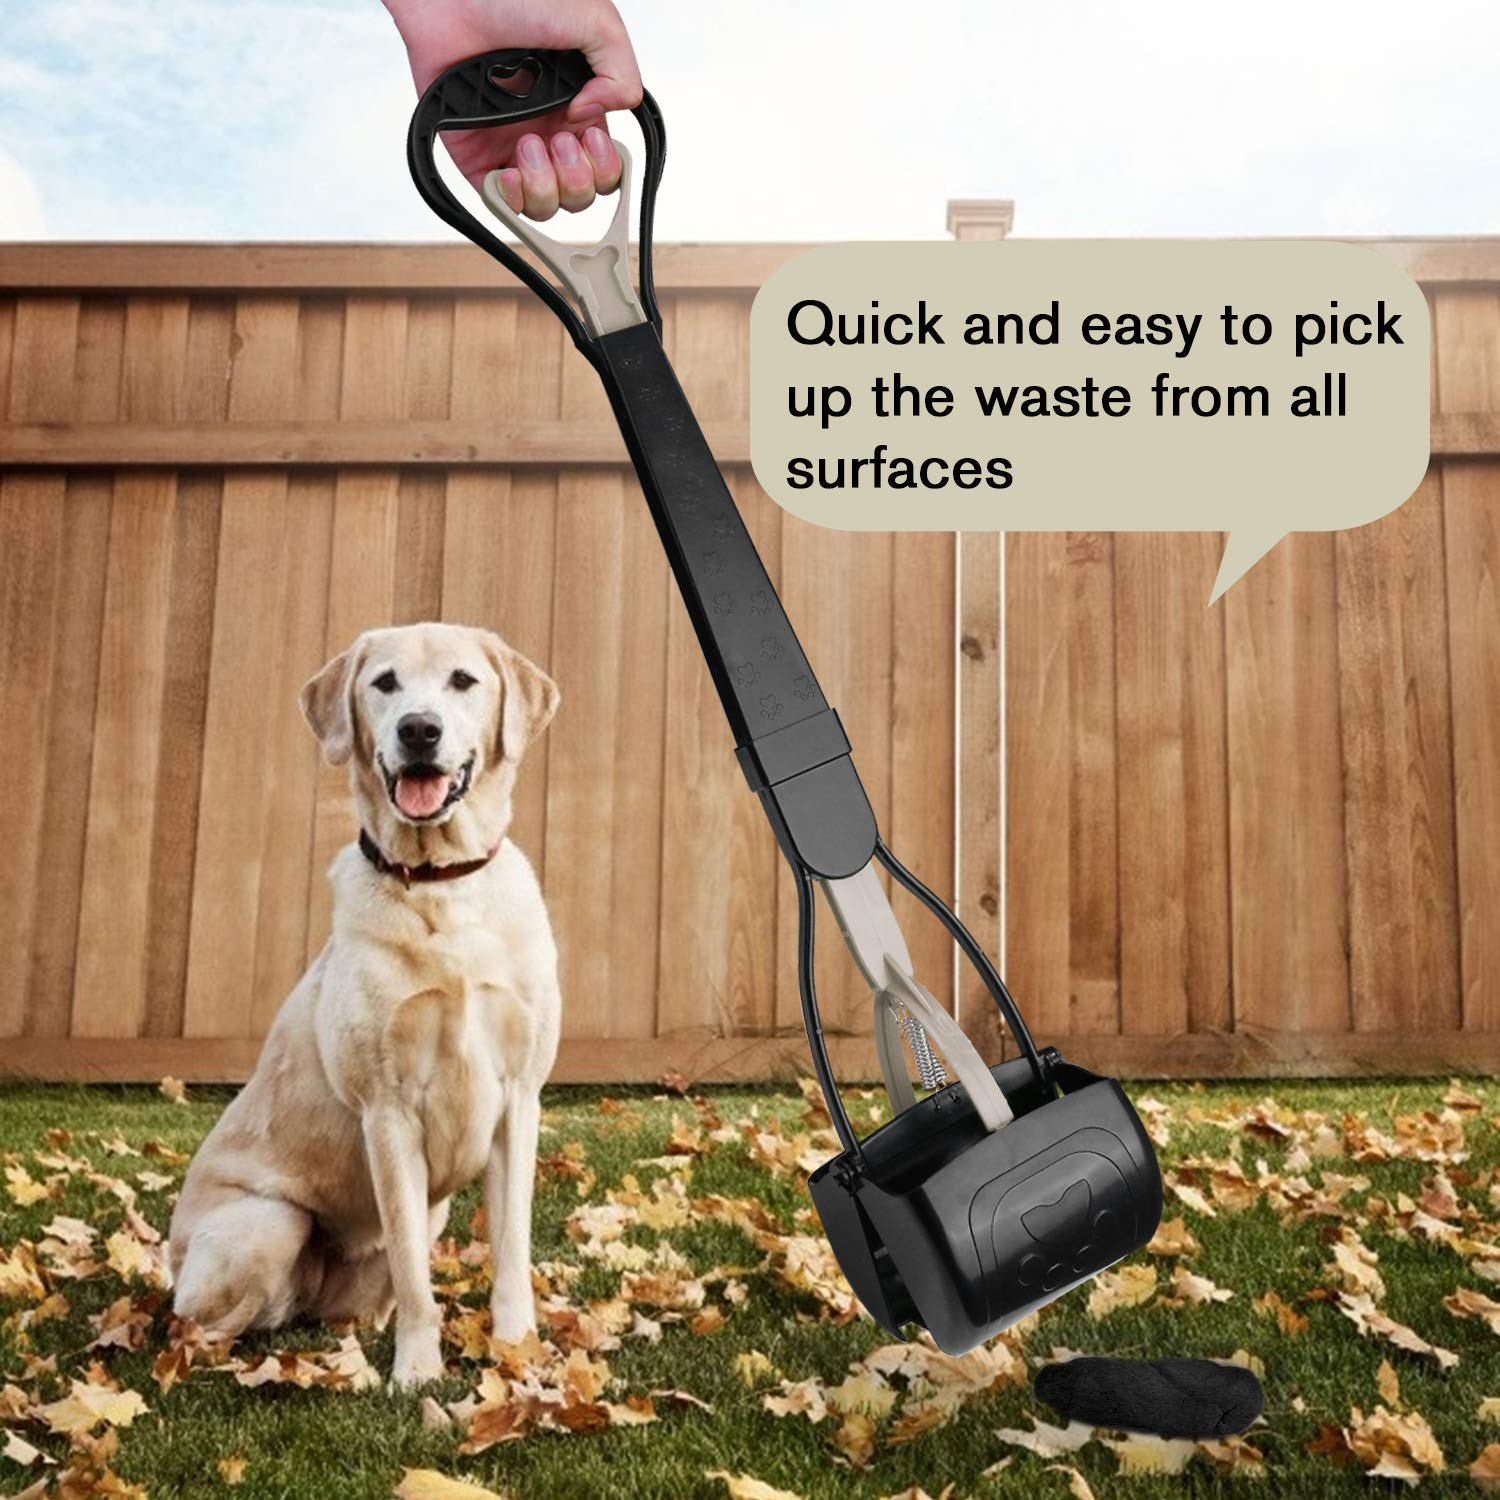 TIMINGILA Long Handle Pet Pooper Scooper for Dogs and Cats with High Strength Material and Durable Spring Easy to Use for Grass, Dirt, Gravel Pick Up (Apricot)